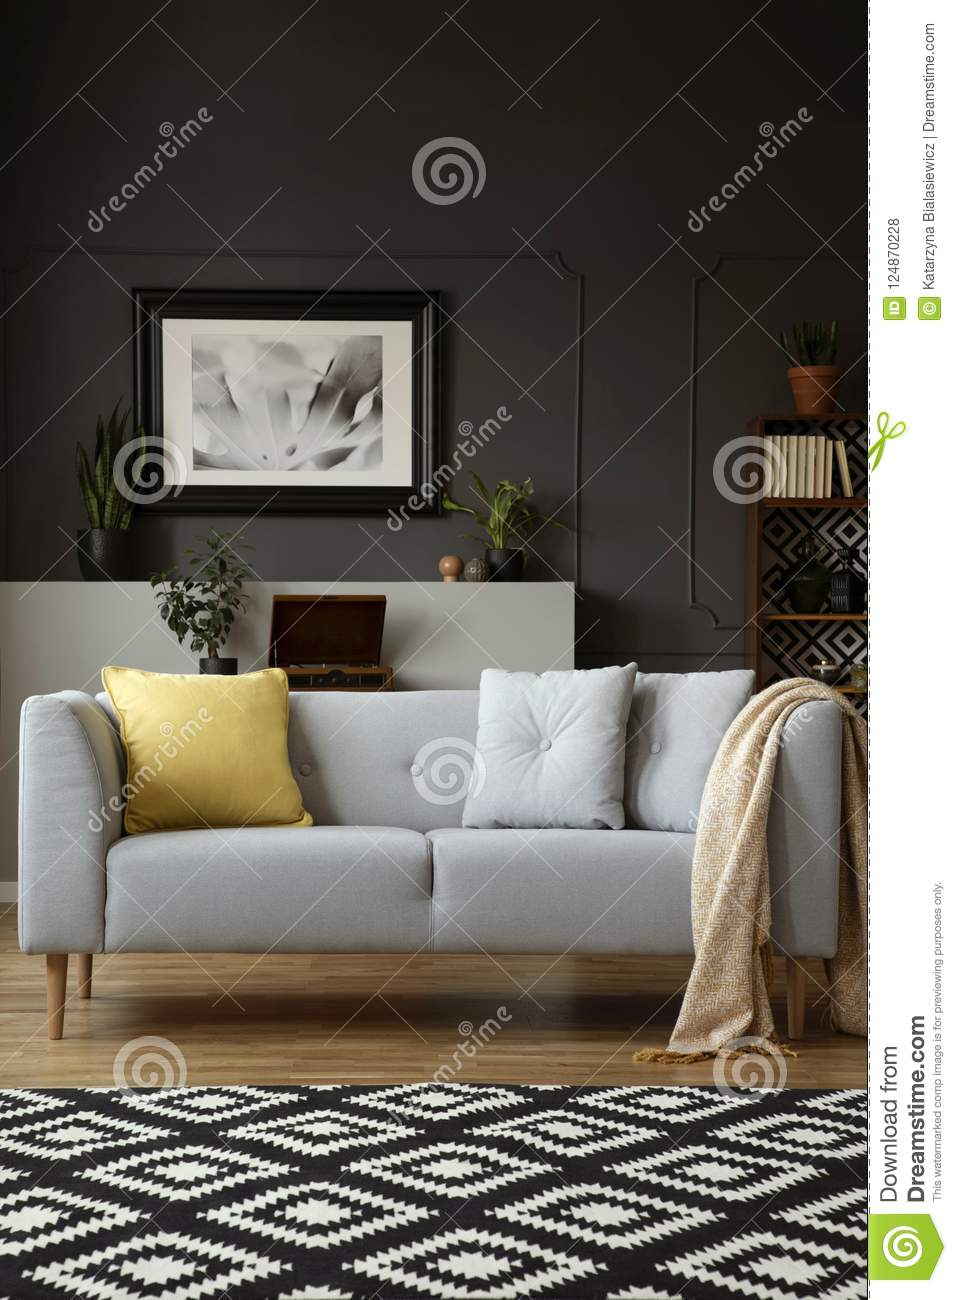 Blanket on grey settee with yellow cushion in living room interior with carpet and poster. Real photo